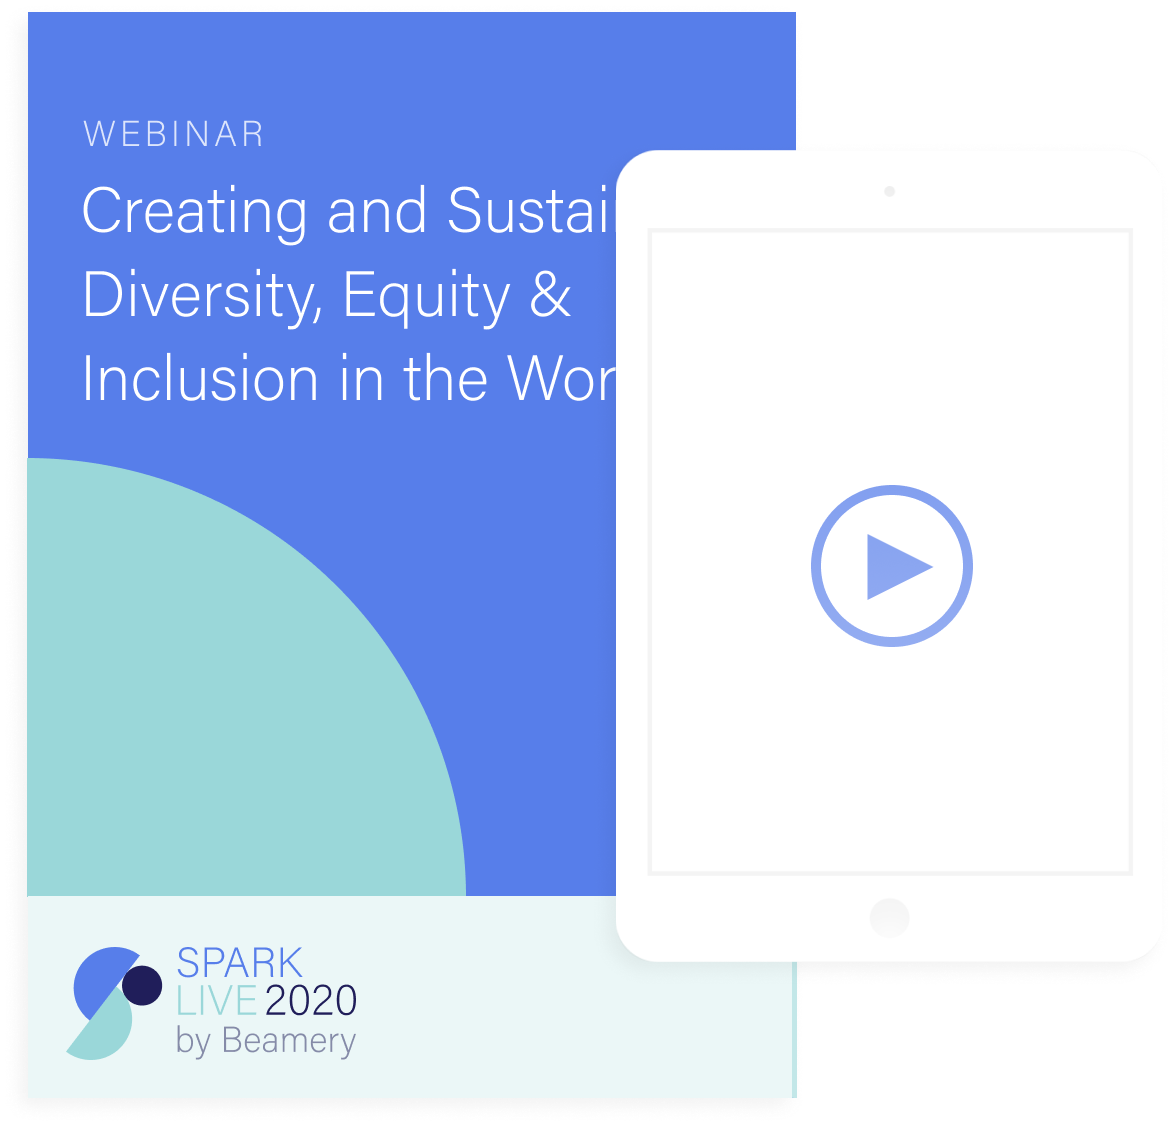 Creating and Sustaining Diversity, Equity & Inclusion in the Workplace